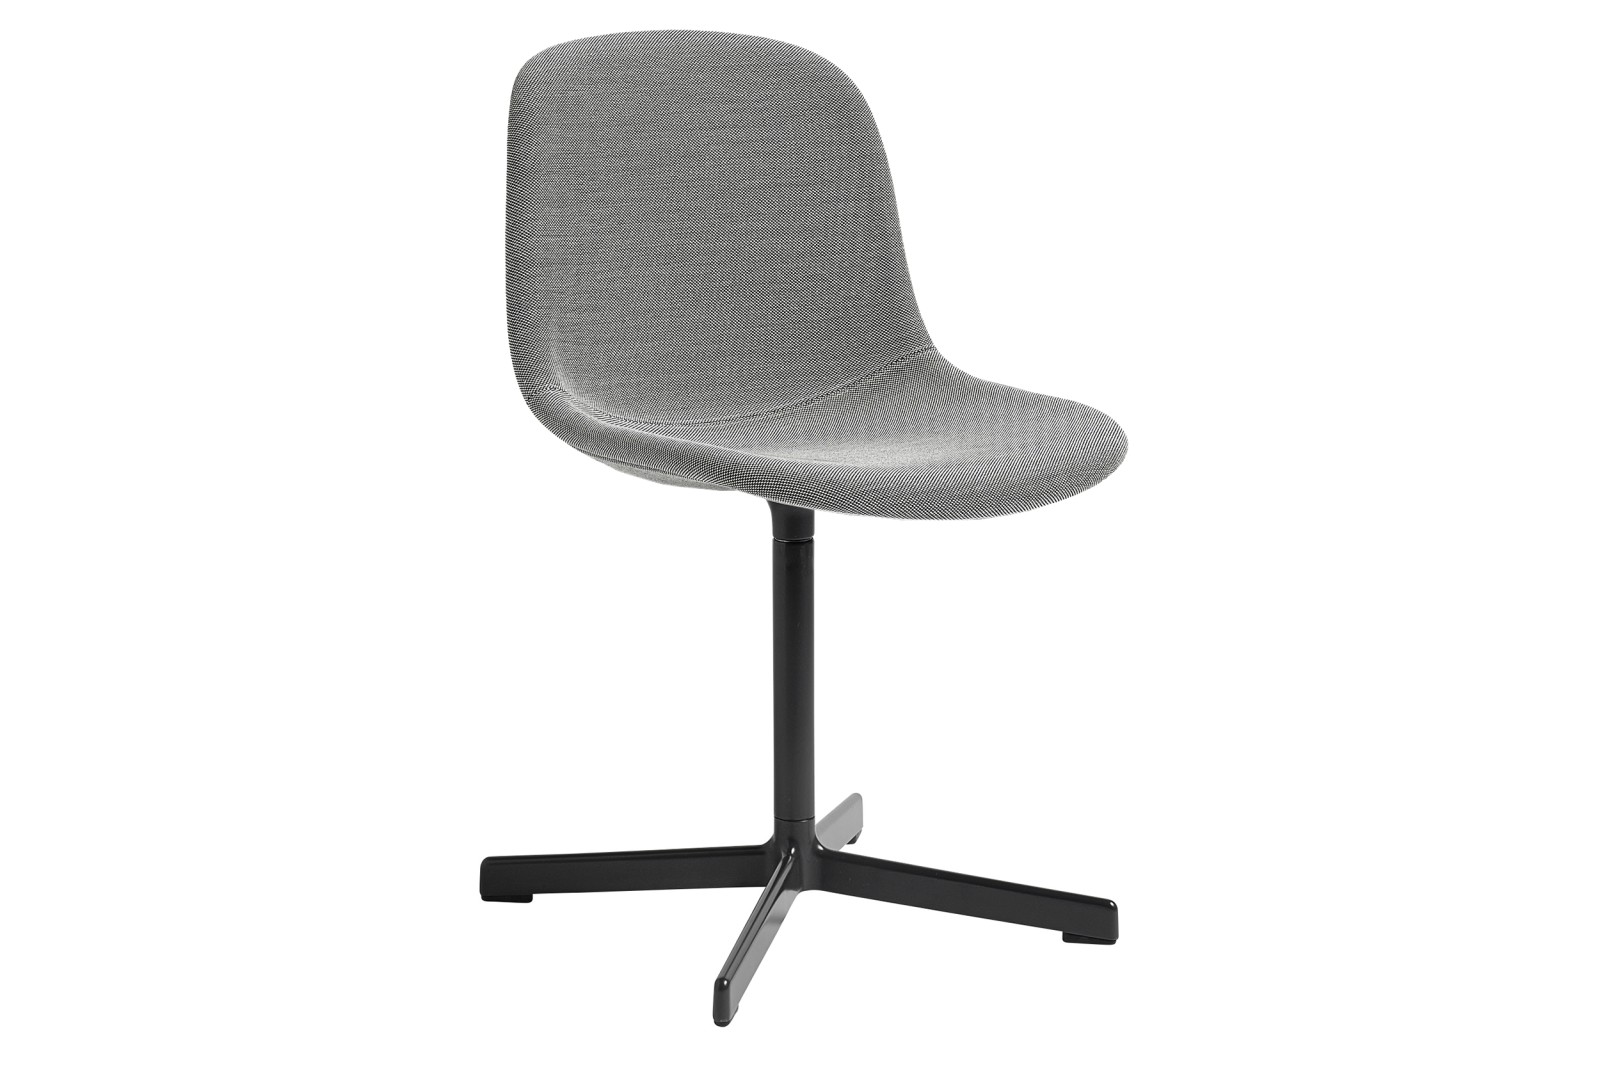 Neu10 Upholstered Chair, Black Base Steelcut 2 110